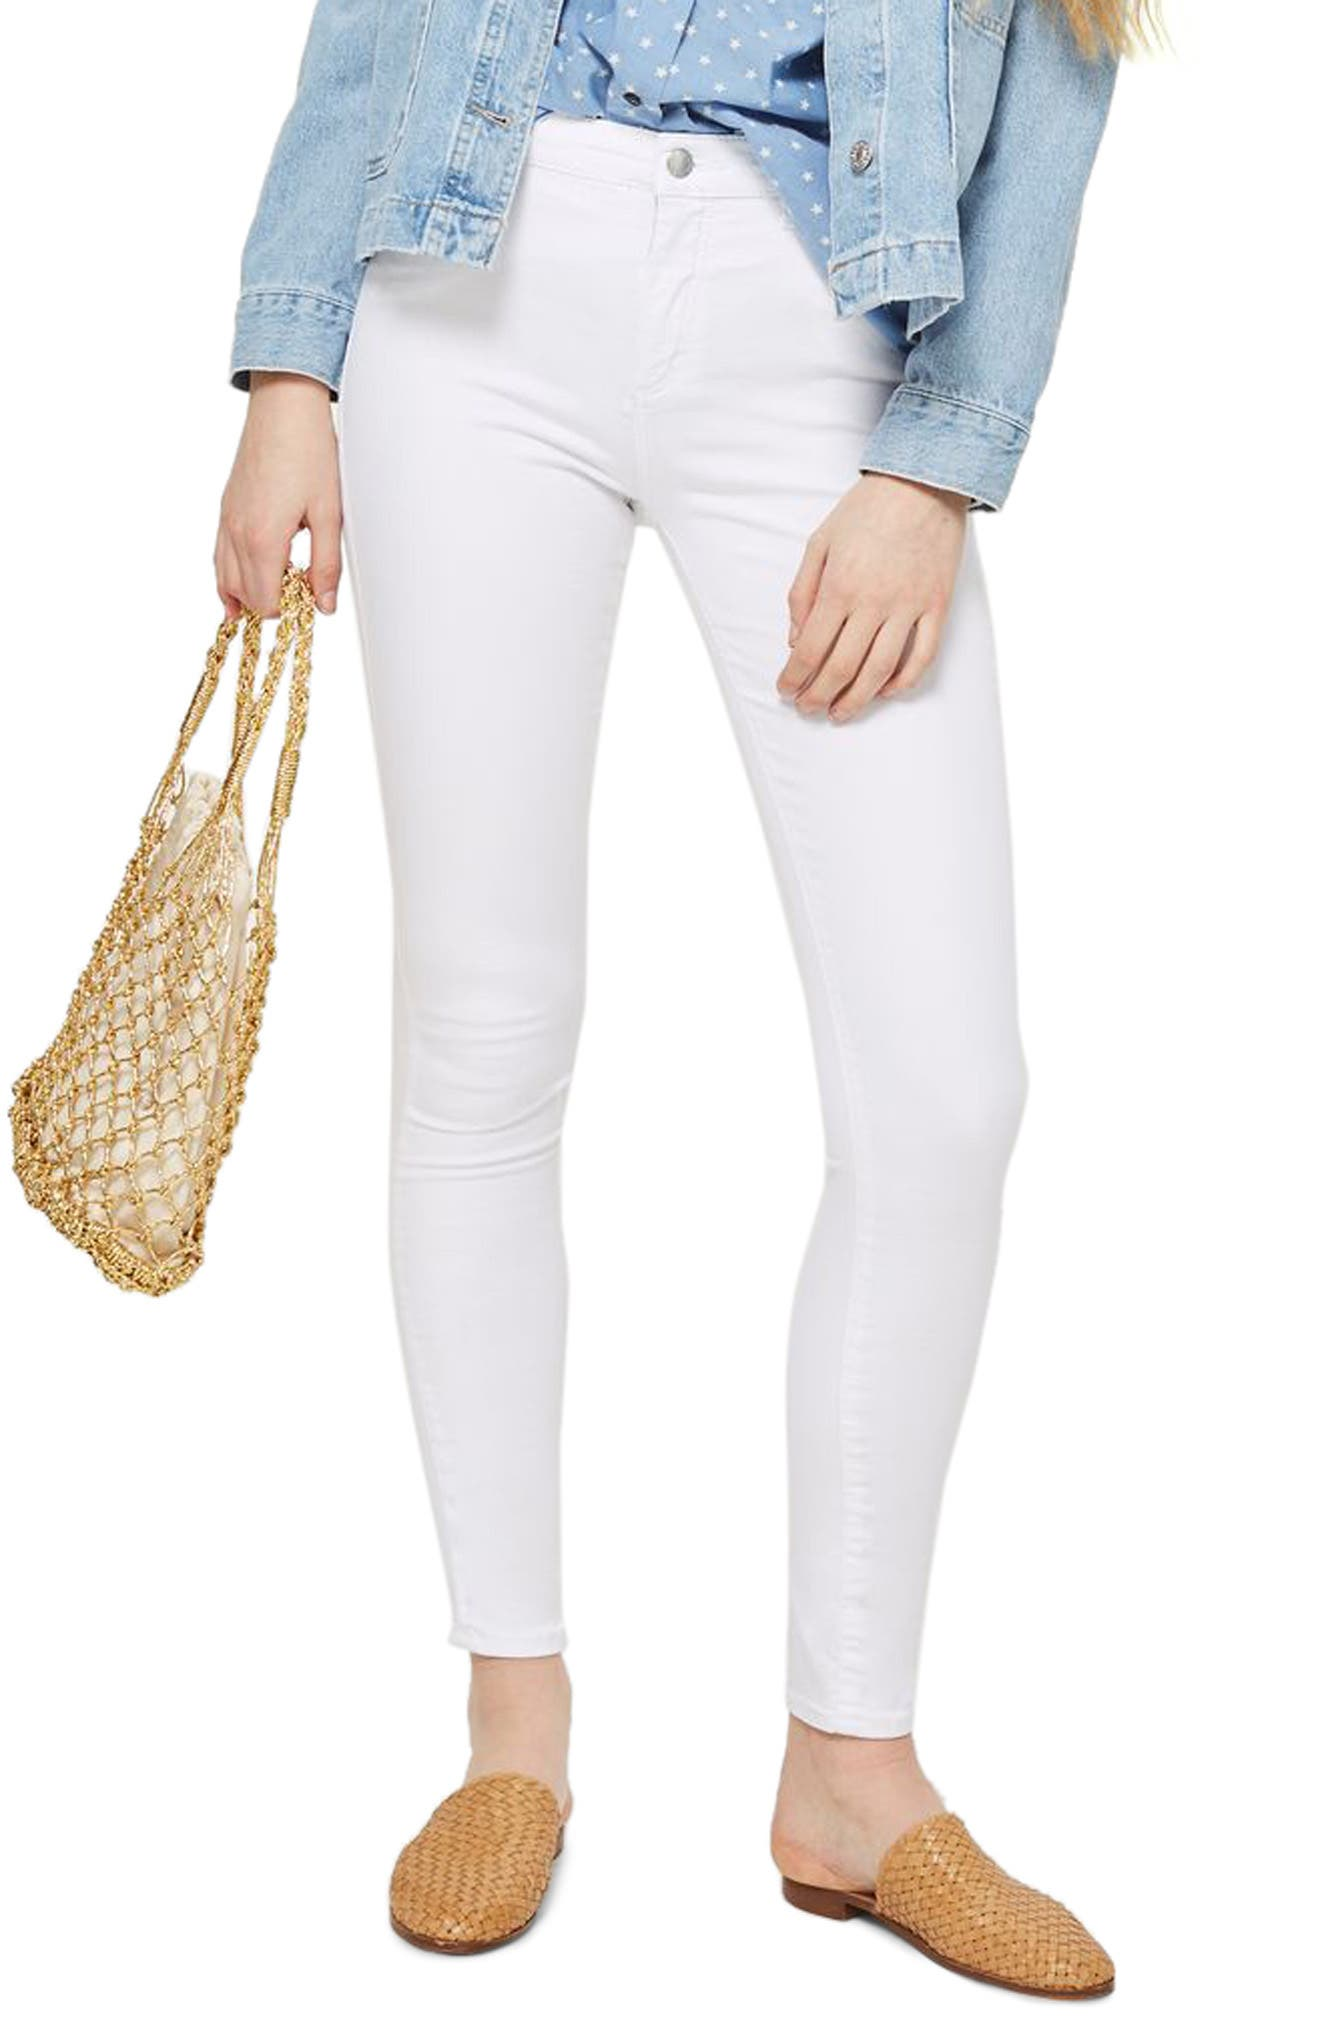 Leigh Skinny Jeans,                             Main thumbnail 1, color,                             White